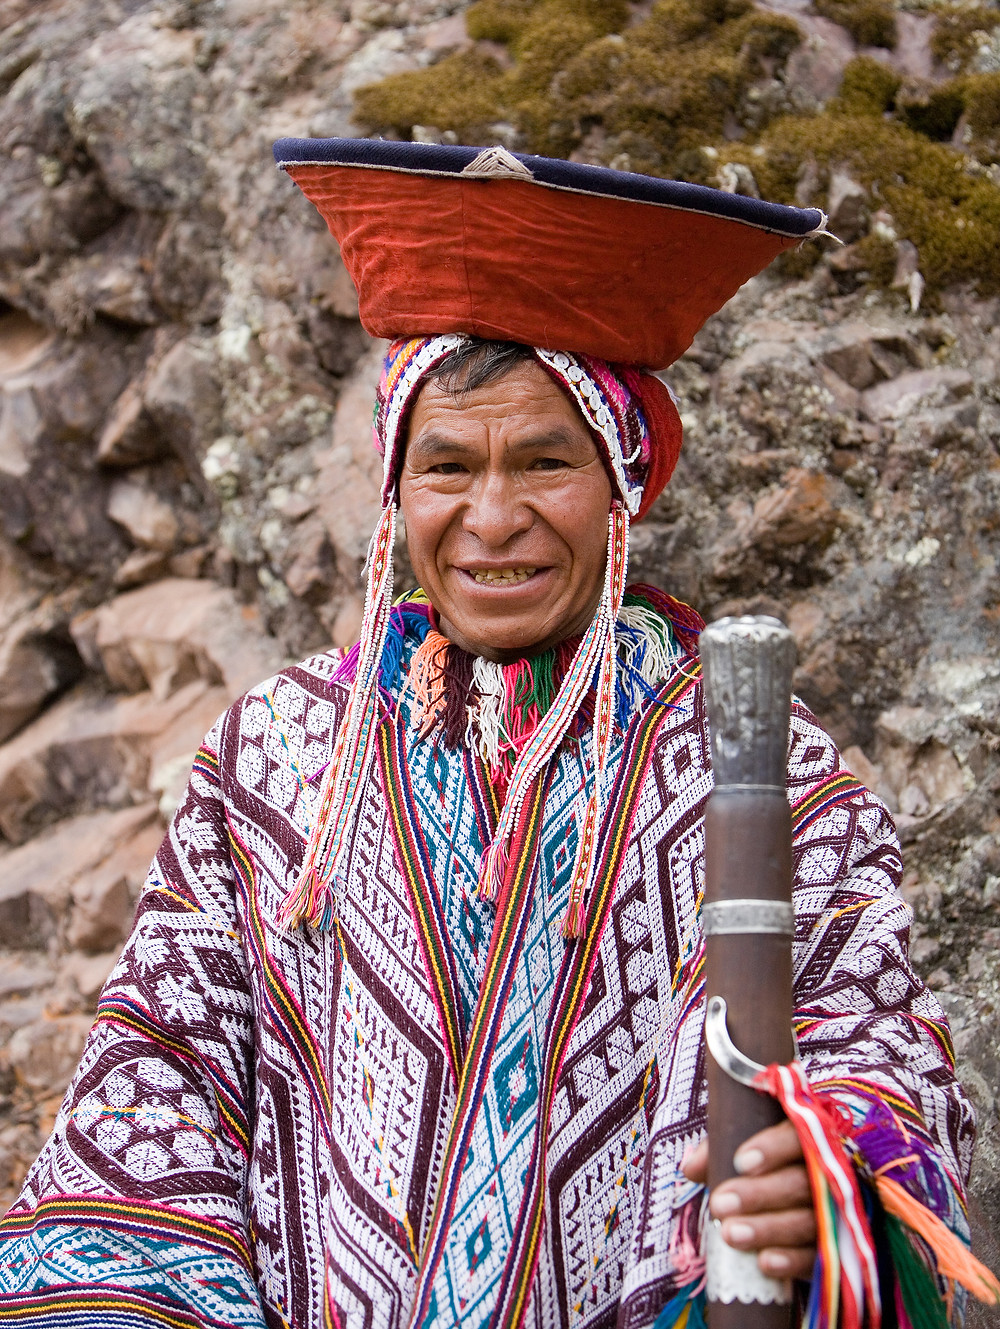 Andean Man. Photo by Cacophony, cc license